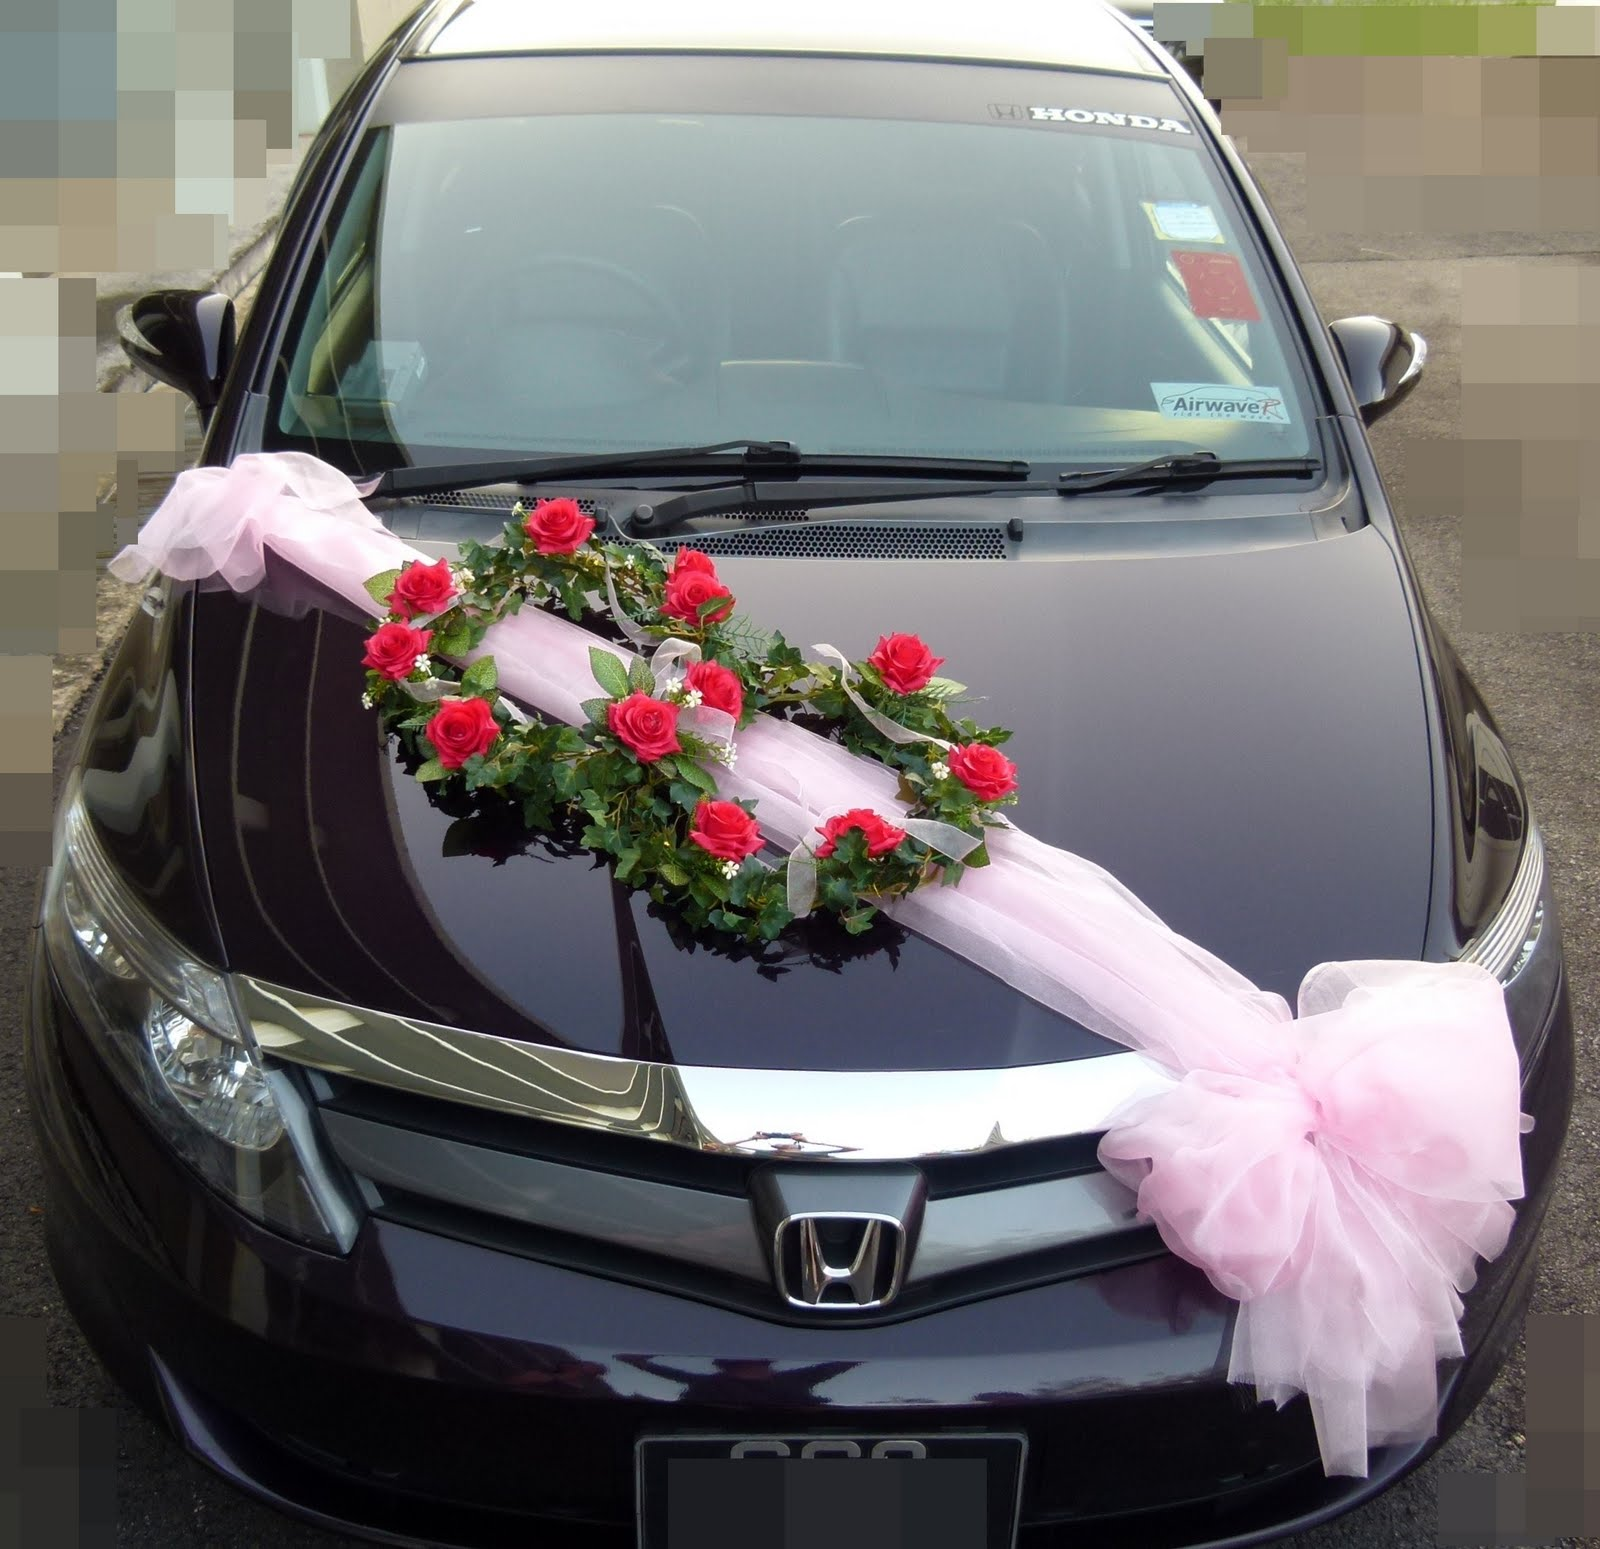 Lynette & U: Wedding Car Decorations